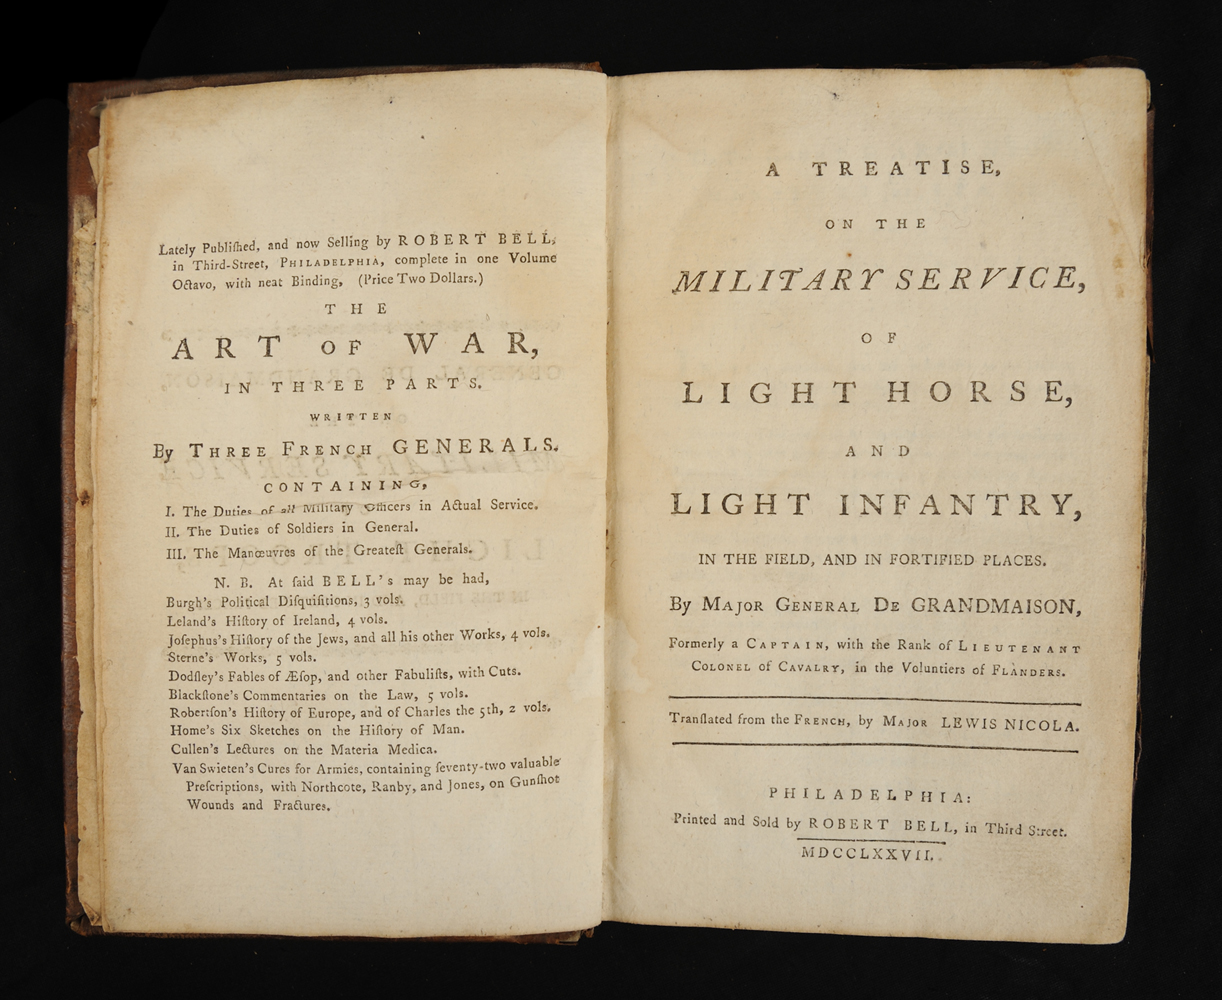 <em>A Treatise on the Military Service of Light Horse and Light Infantry</em> by Thomas Auguste le Roy de Grandmaison, 1777